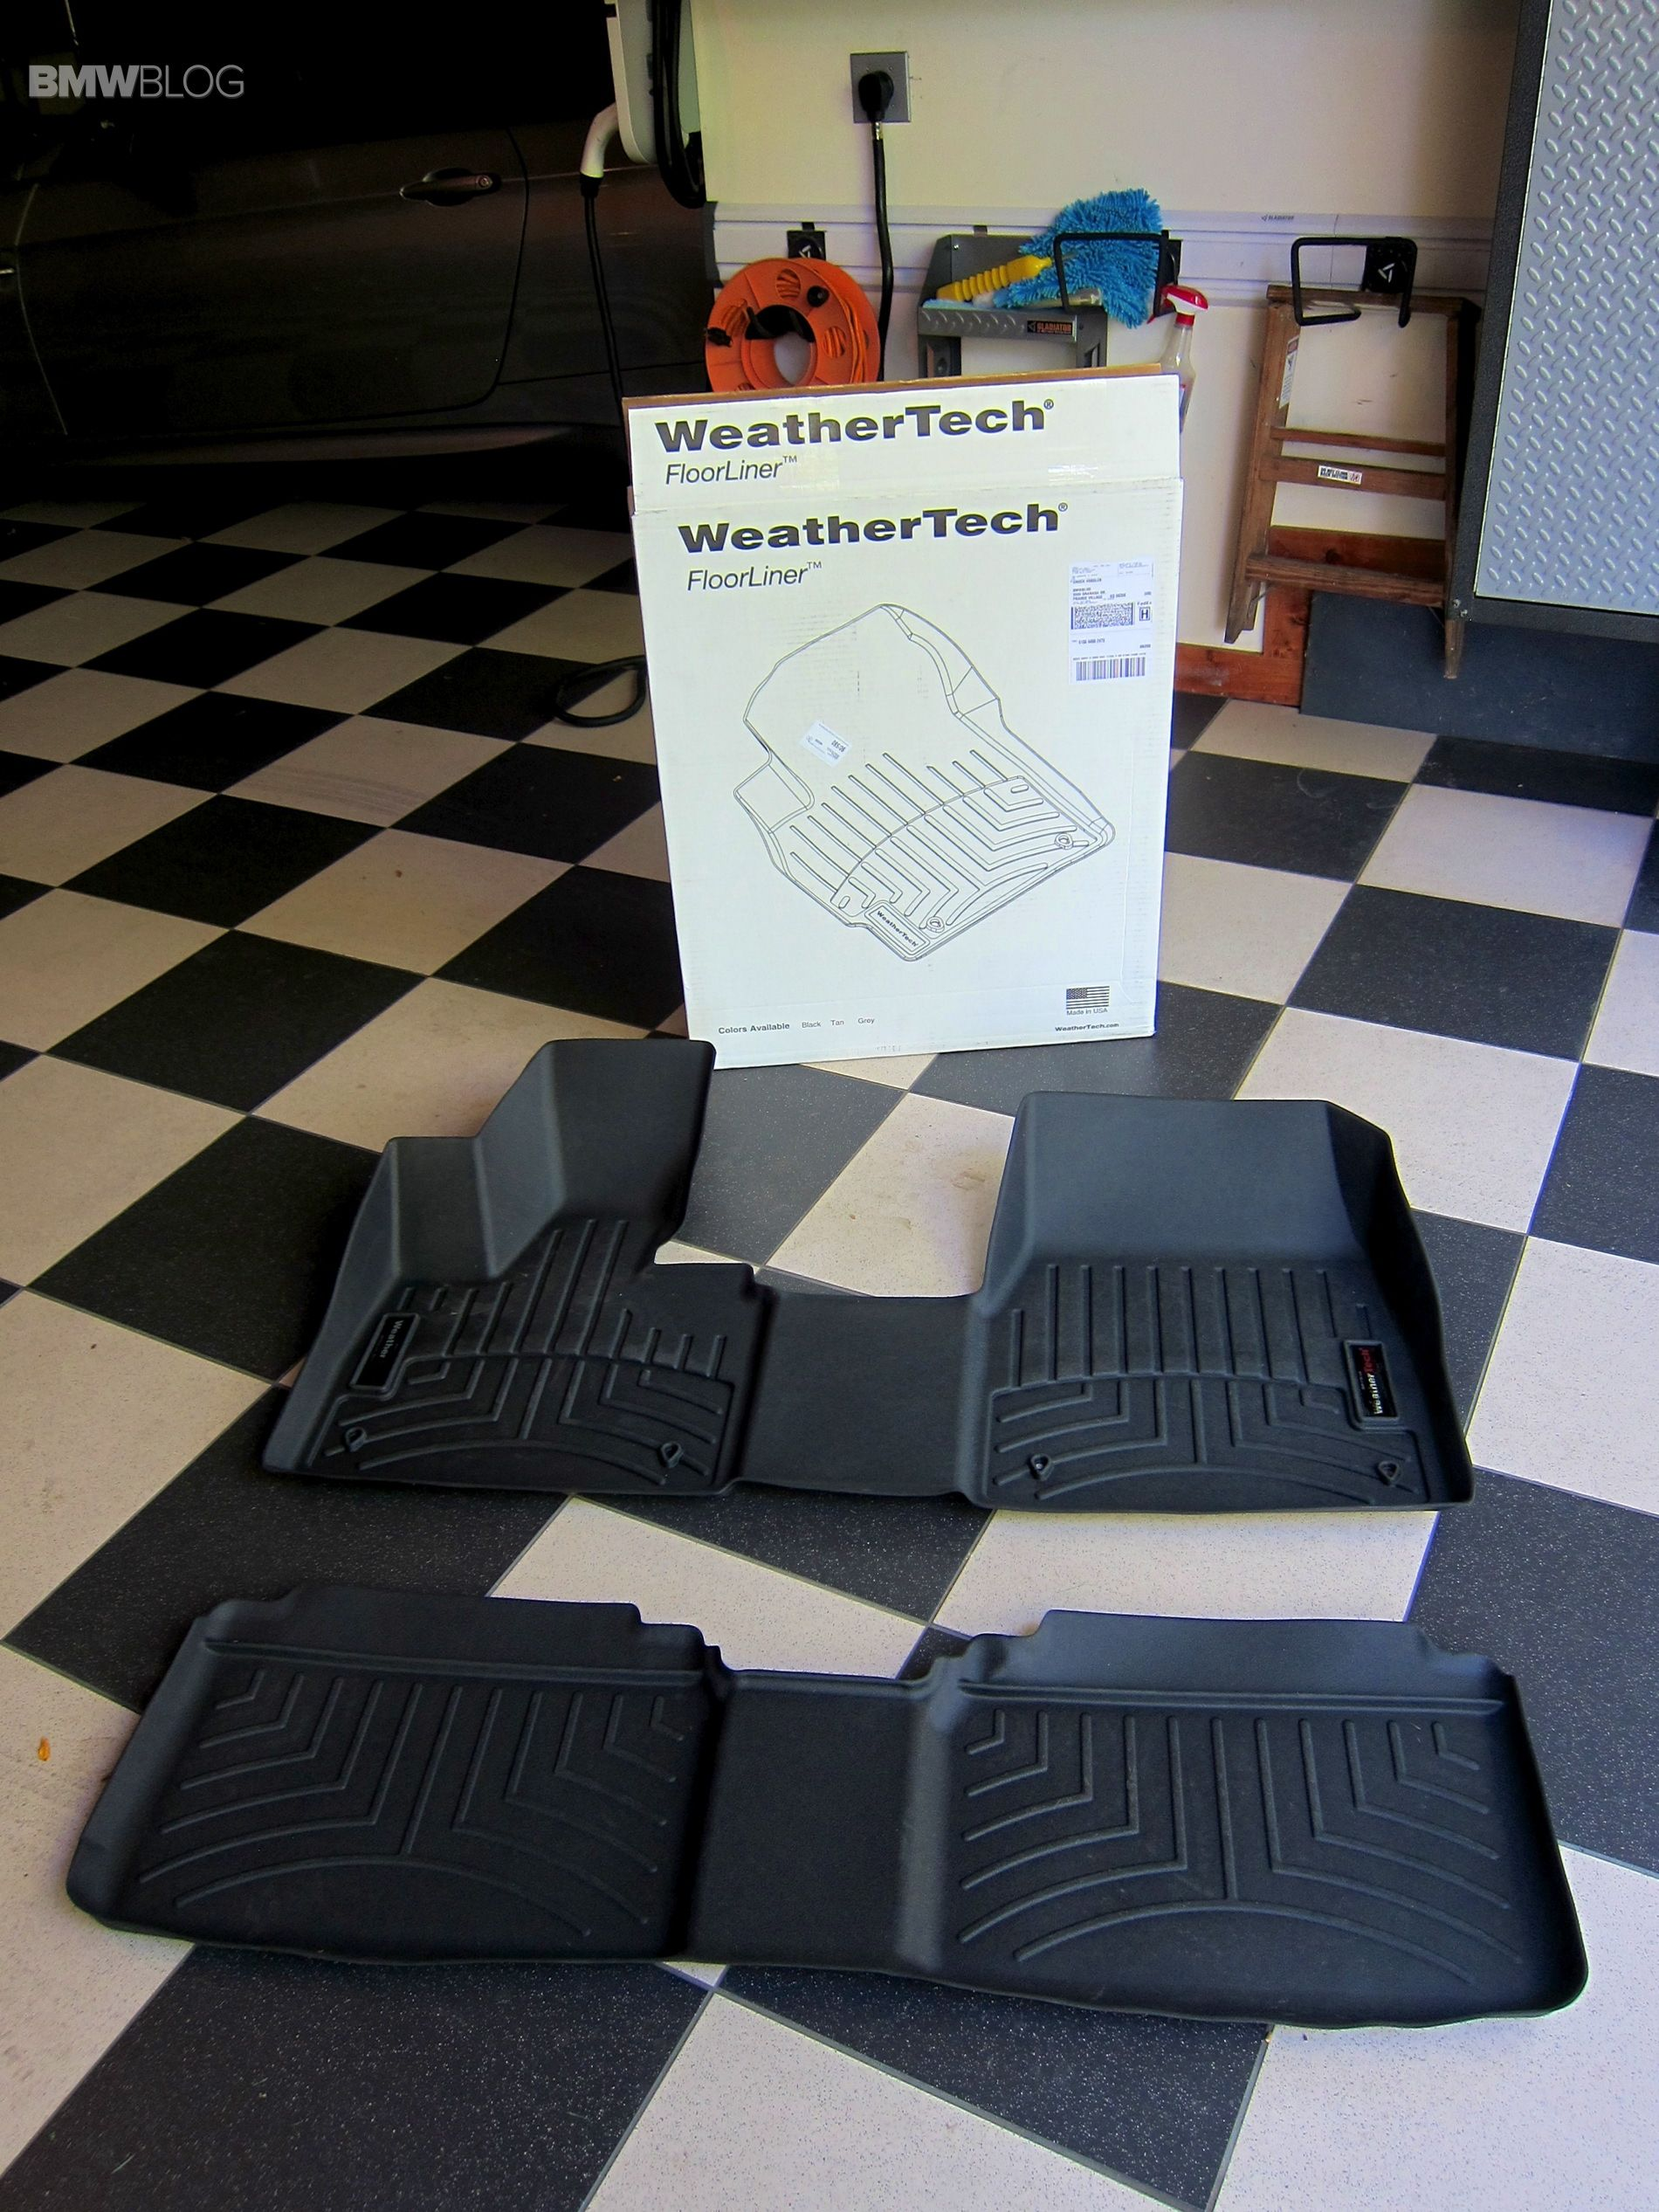 WeatherTech Floor Mats in a BMW i3 Photo Ideas for the